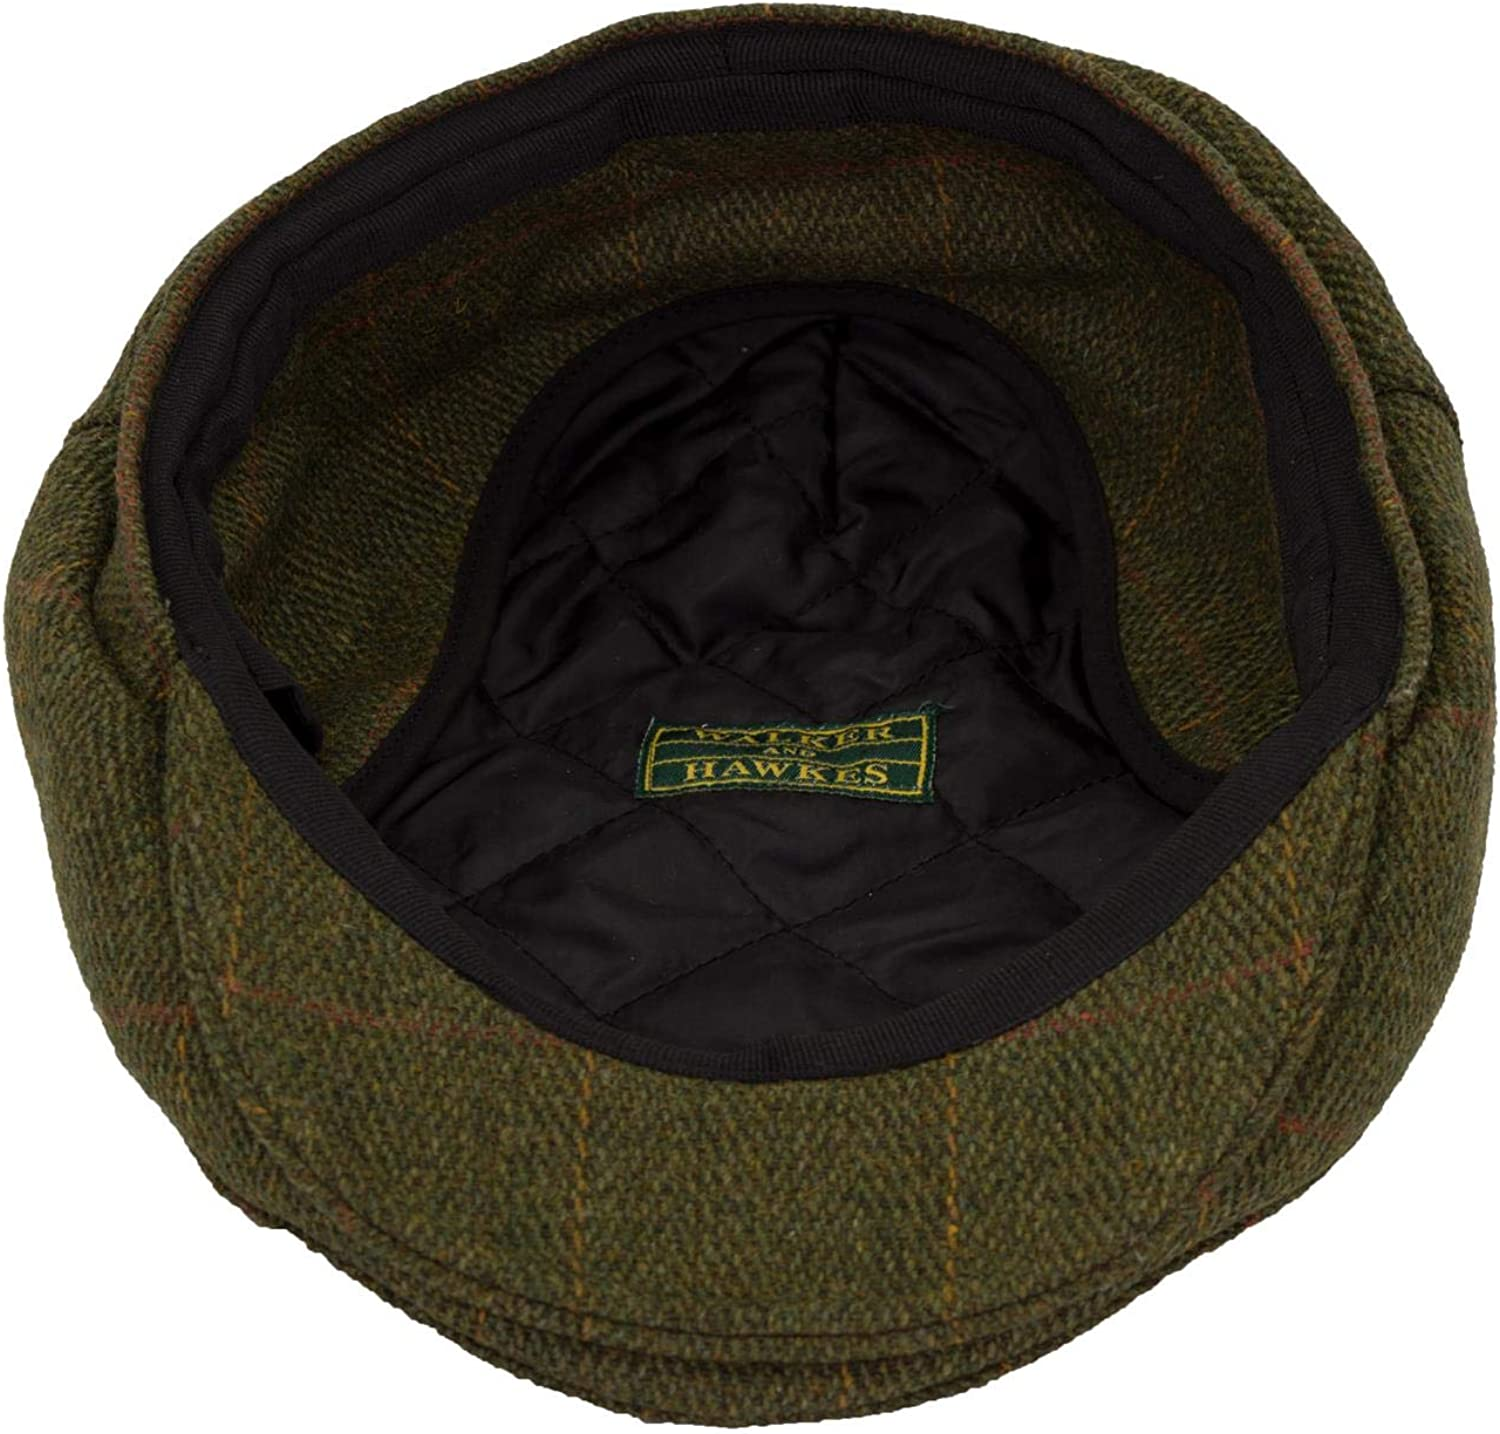 Walker and Hawkes Unisex Tweed Trapper Flat Cap with Foldable Ear Flaps